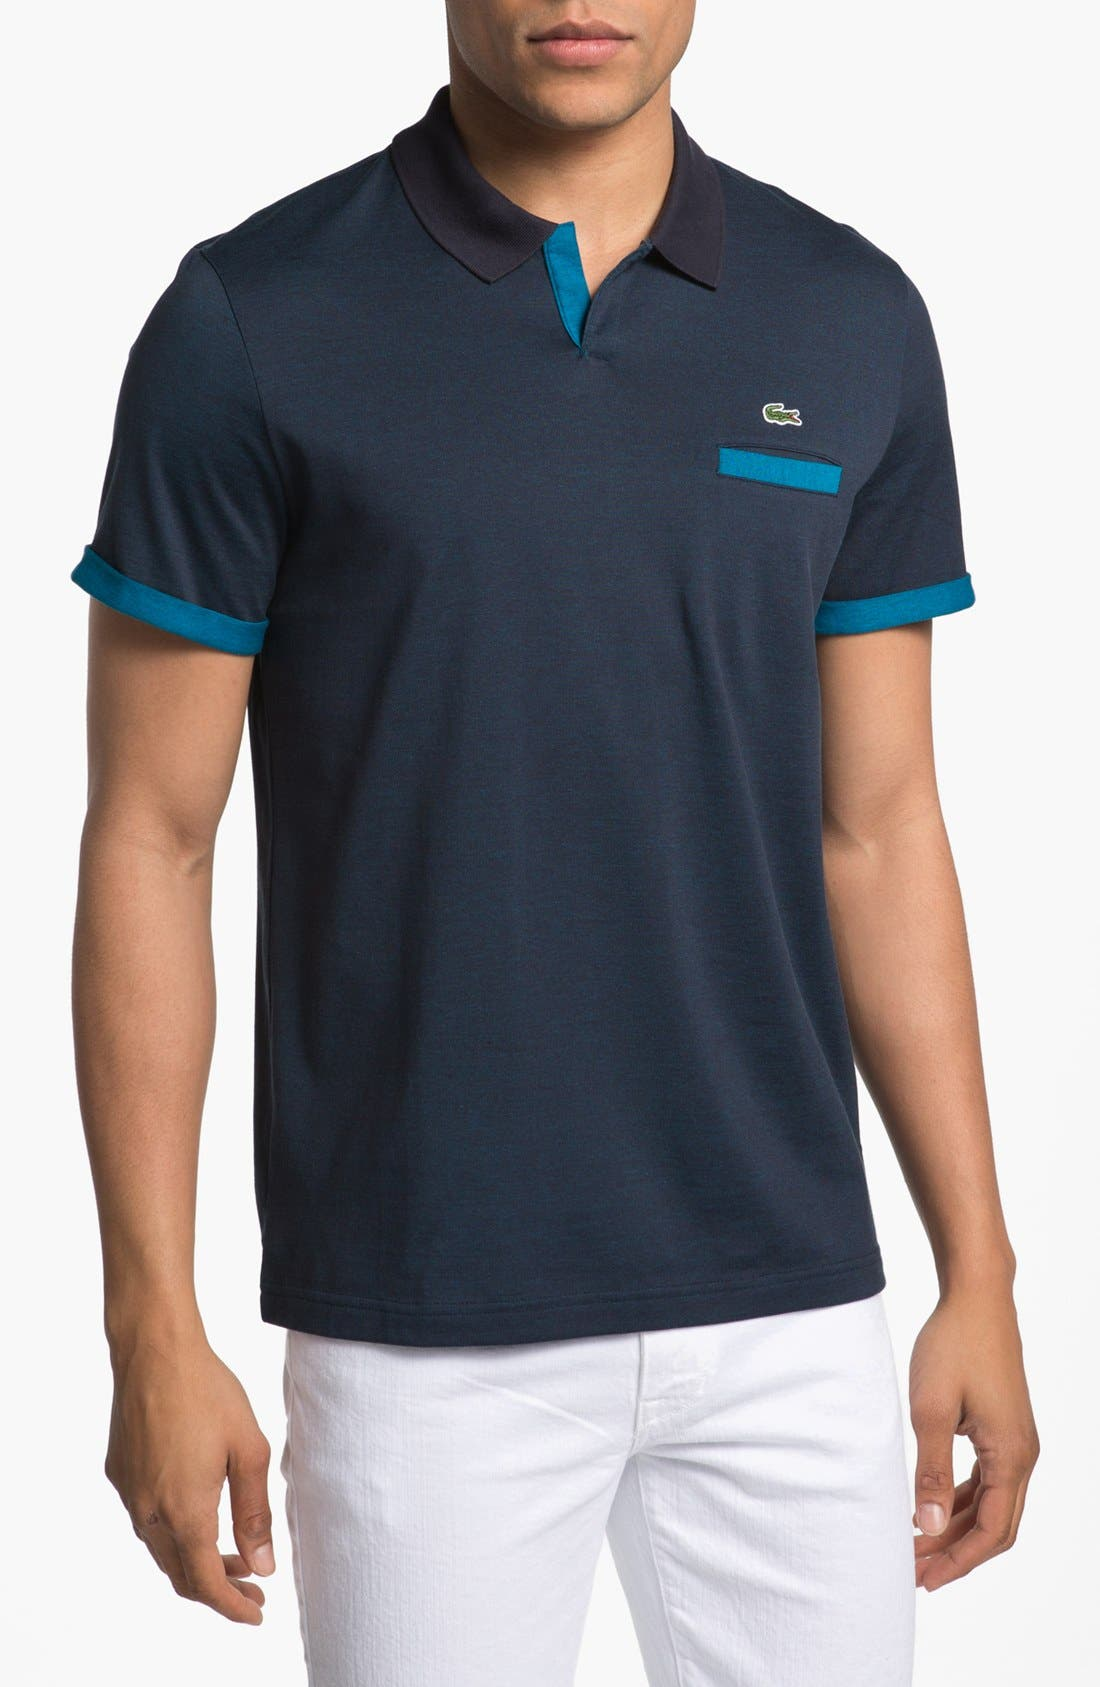 Main Image - Lacoste Johnny Collar Polo